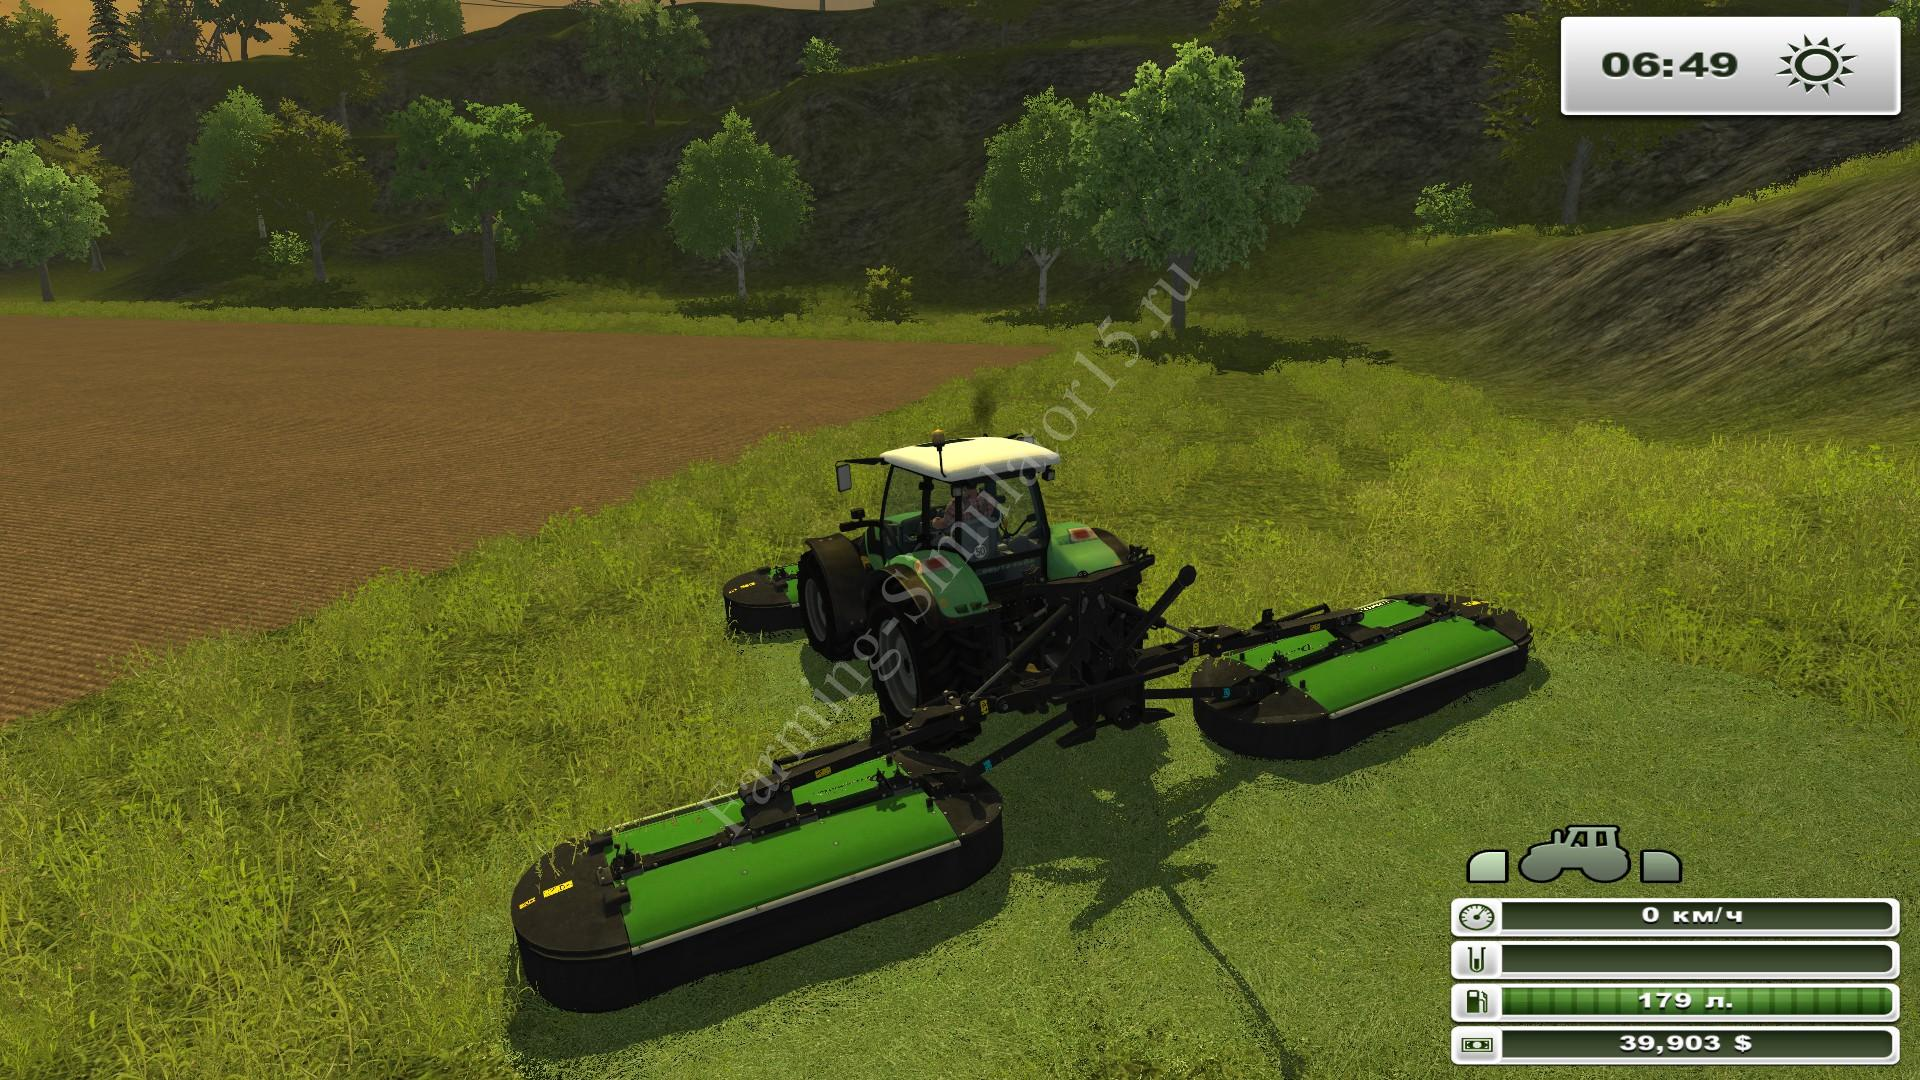 Мод газонокосилки Drum Master 432F and 493 v 1.0 Farming Simulator 2013, Farming Simulator 13